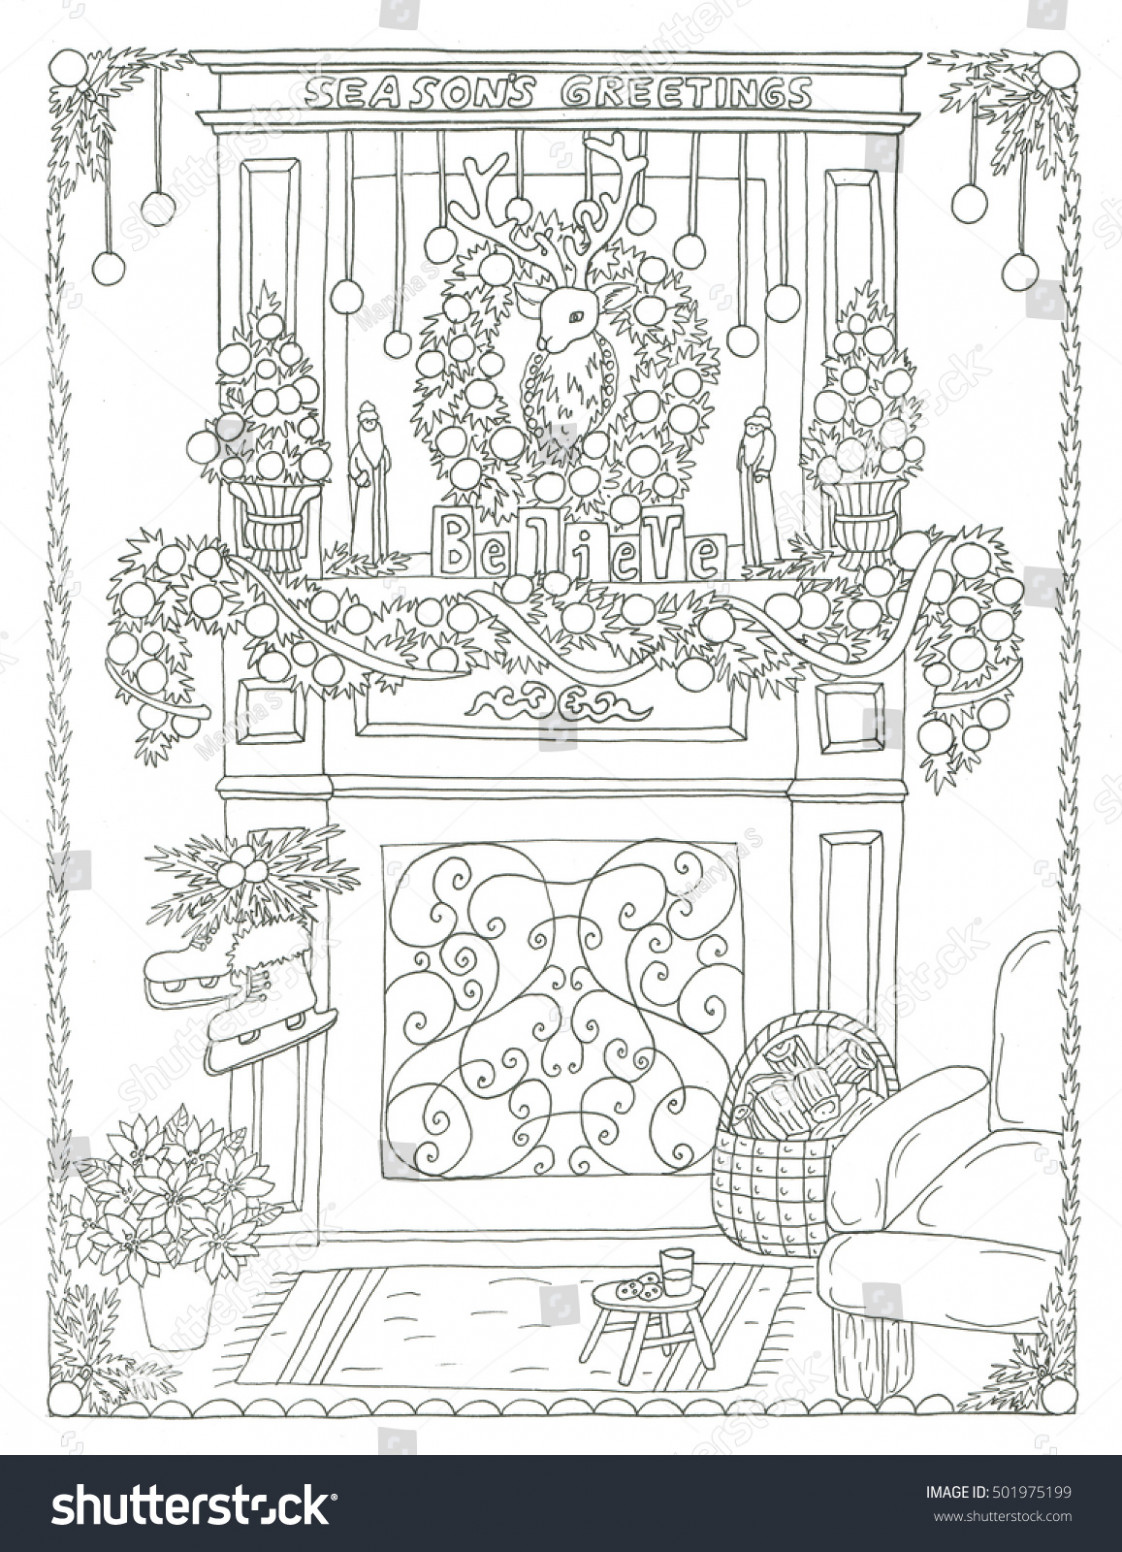 Christmas Fireplace Coloring Page Stock Illustration 14 – Christmas Fireplace Coloring Page